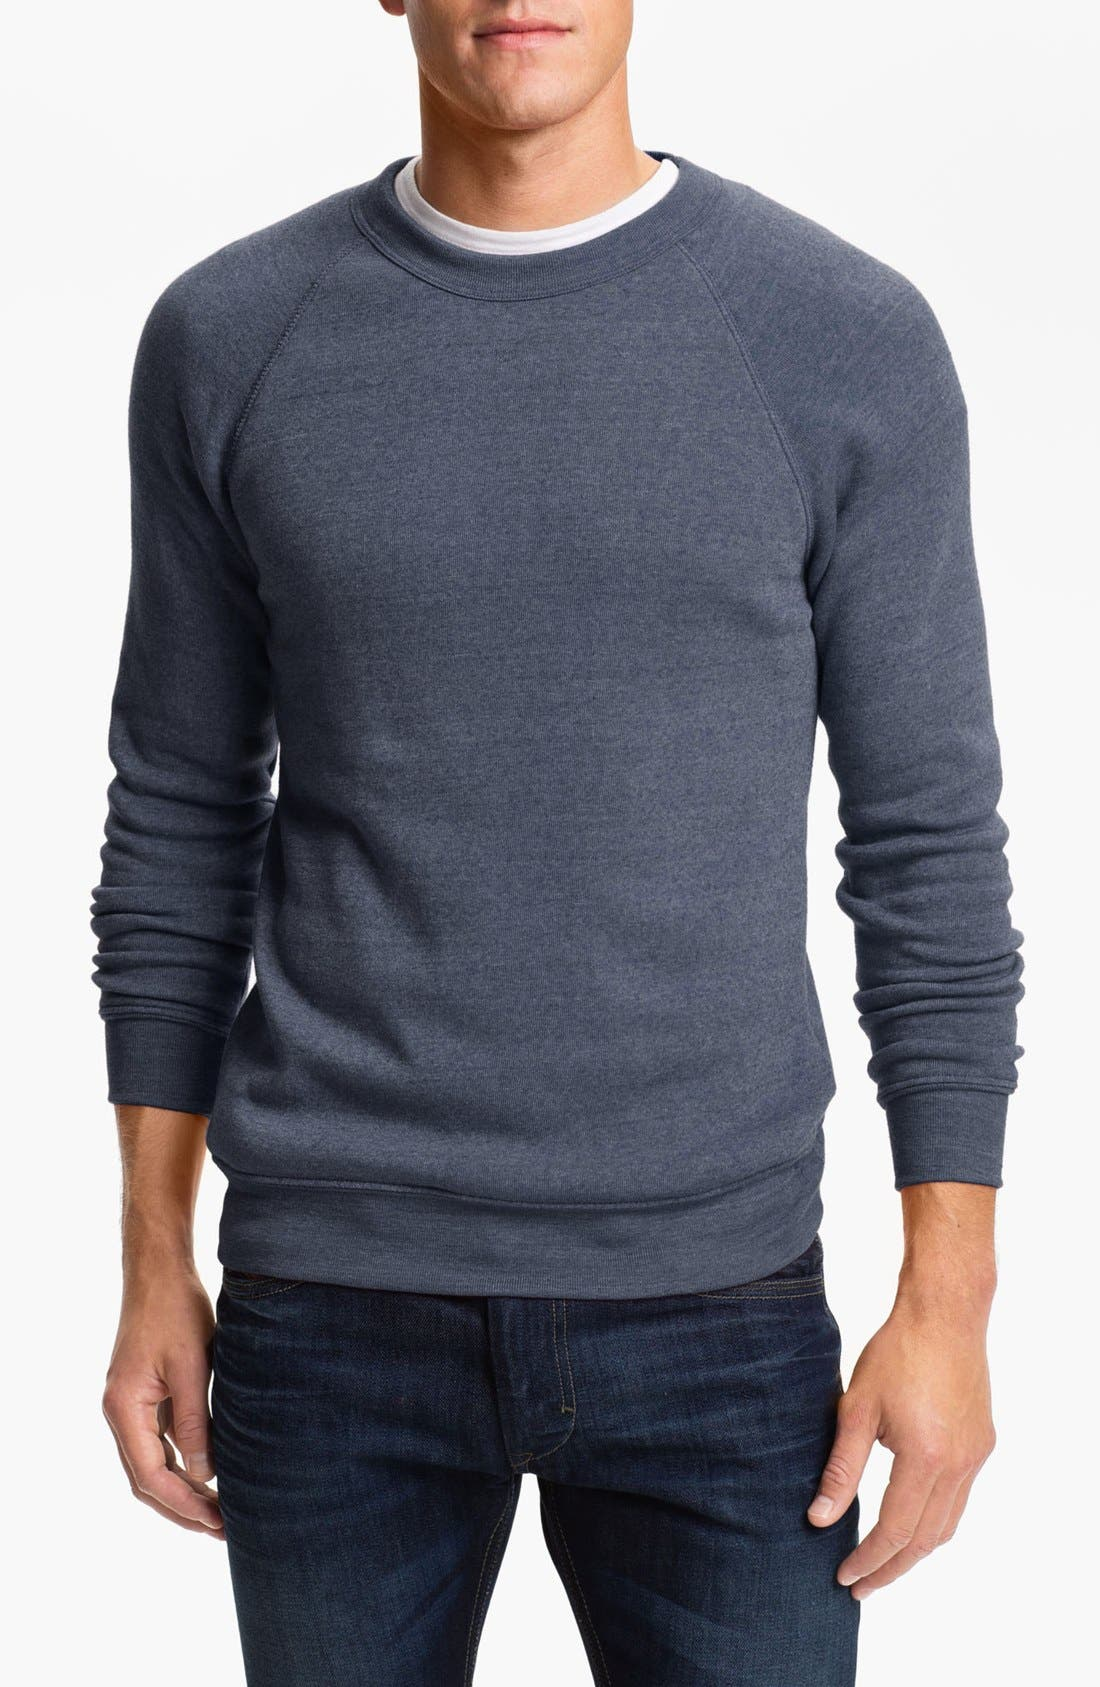 'The Champ' Sweatshirt,                         Main,                         color, Eco True Navy